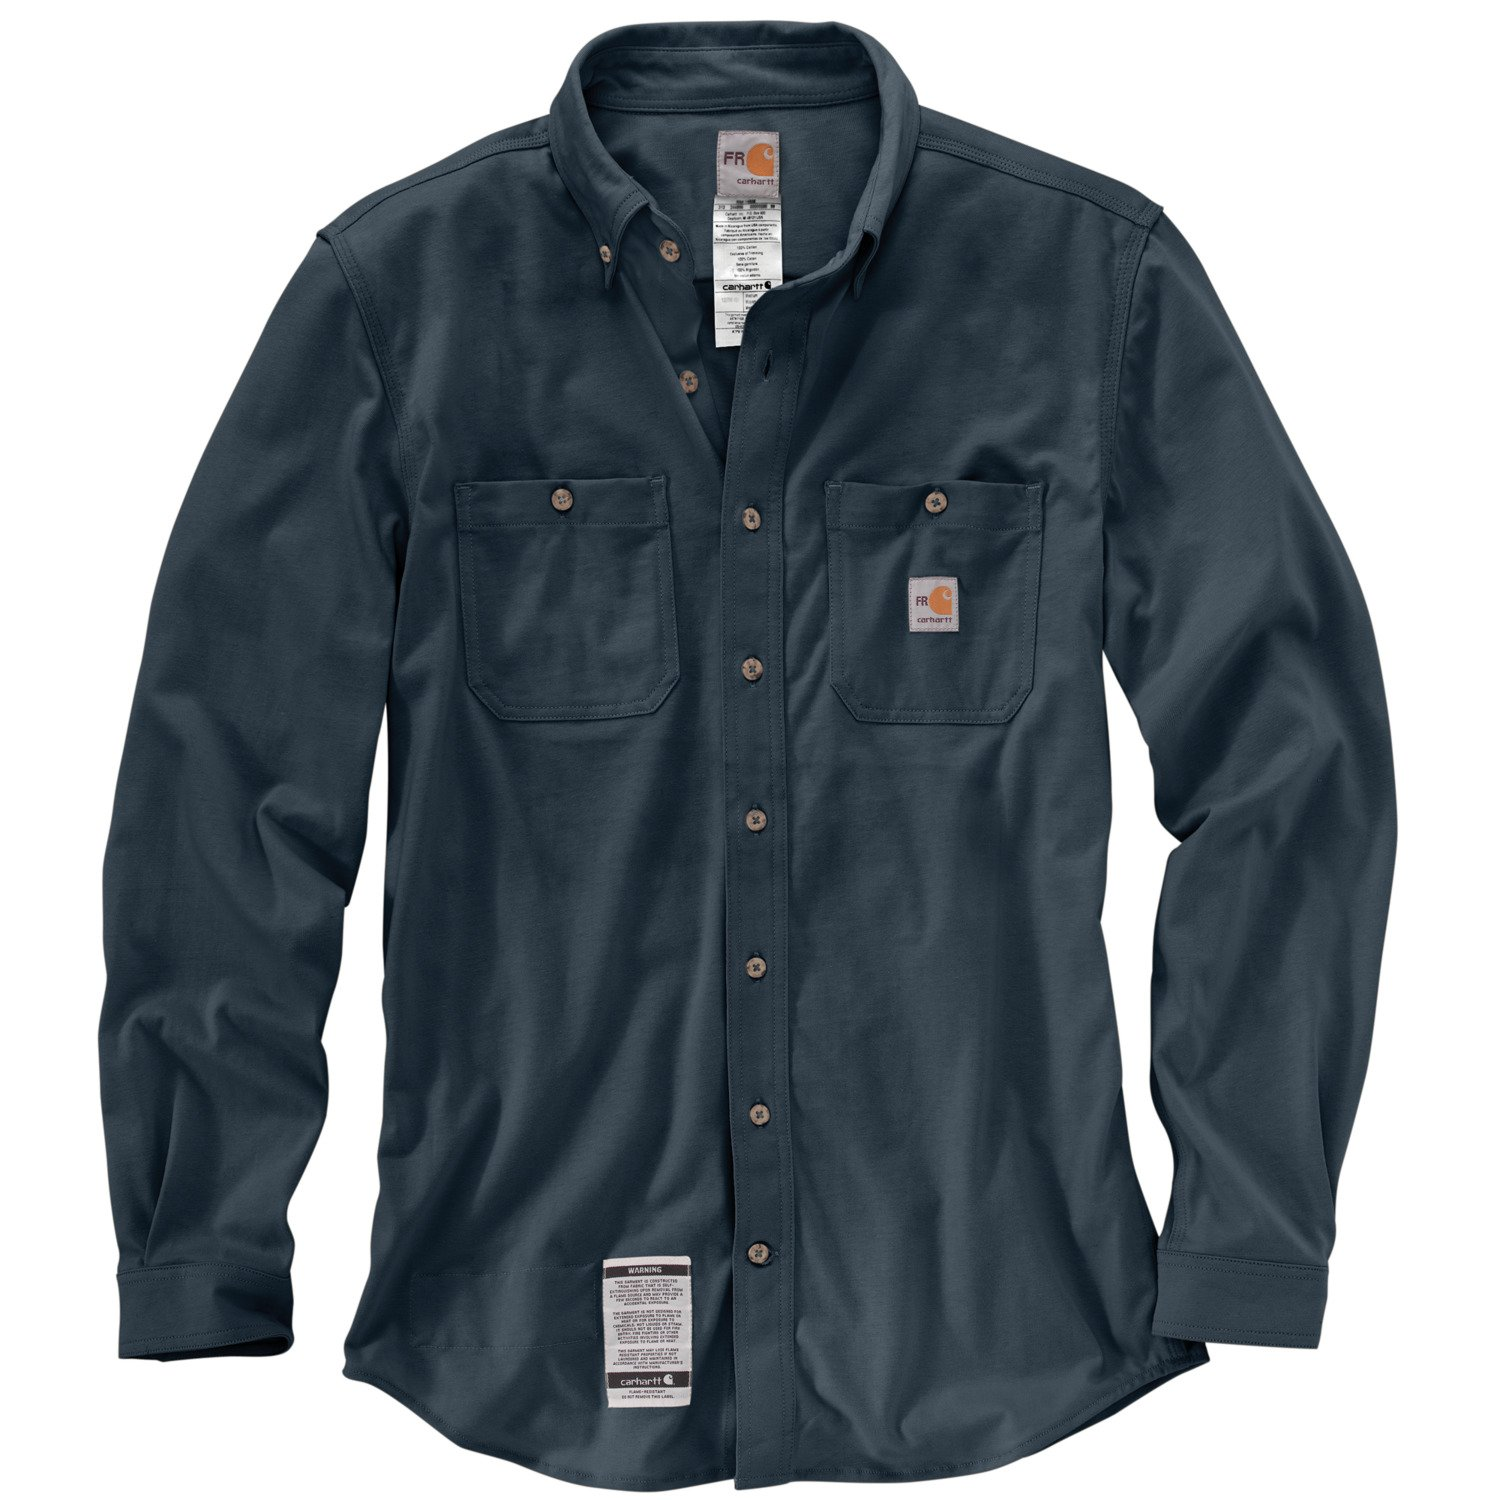 88b66d208793d Carhartt Men's FR Force Cotton Hybrid Shirt | Academy